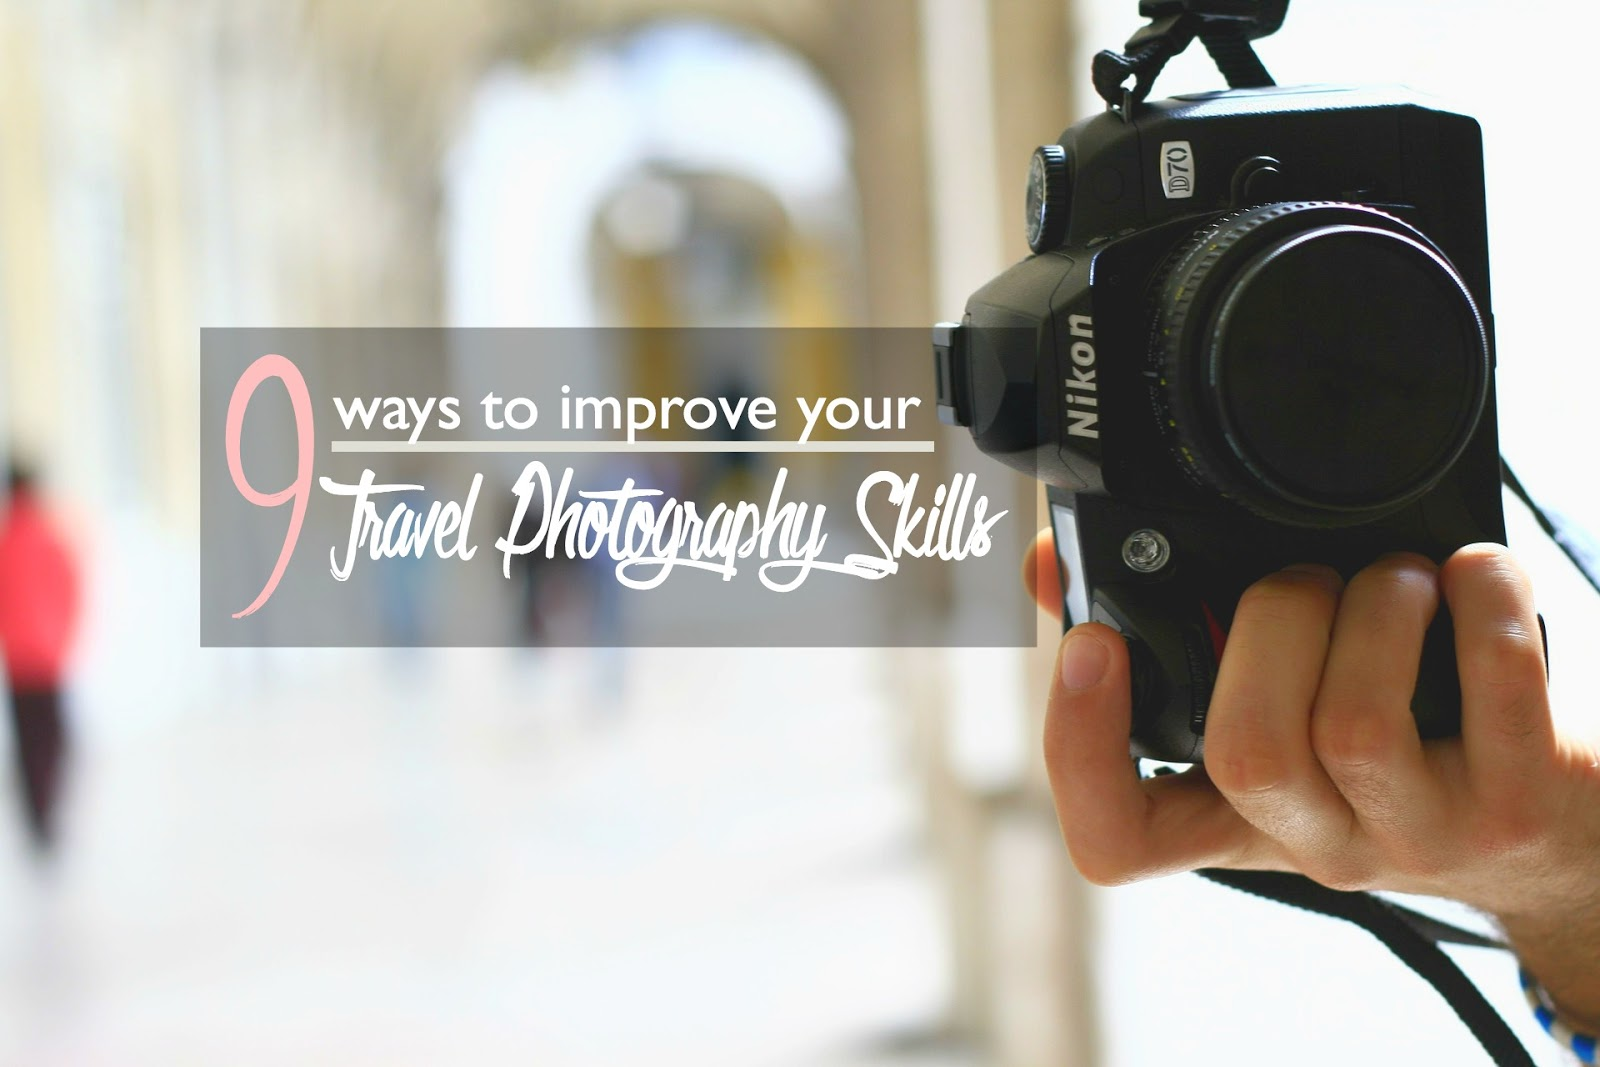 9 Ways to Improve Your Travel Photography Skills